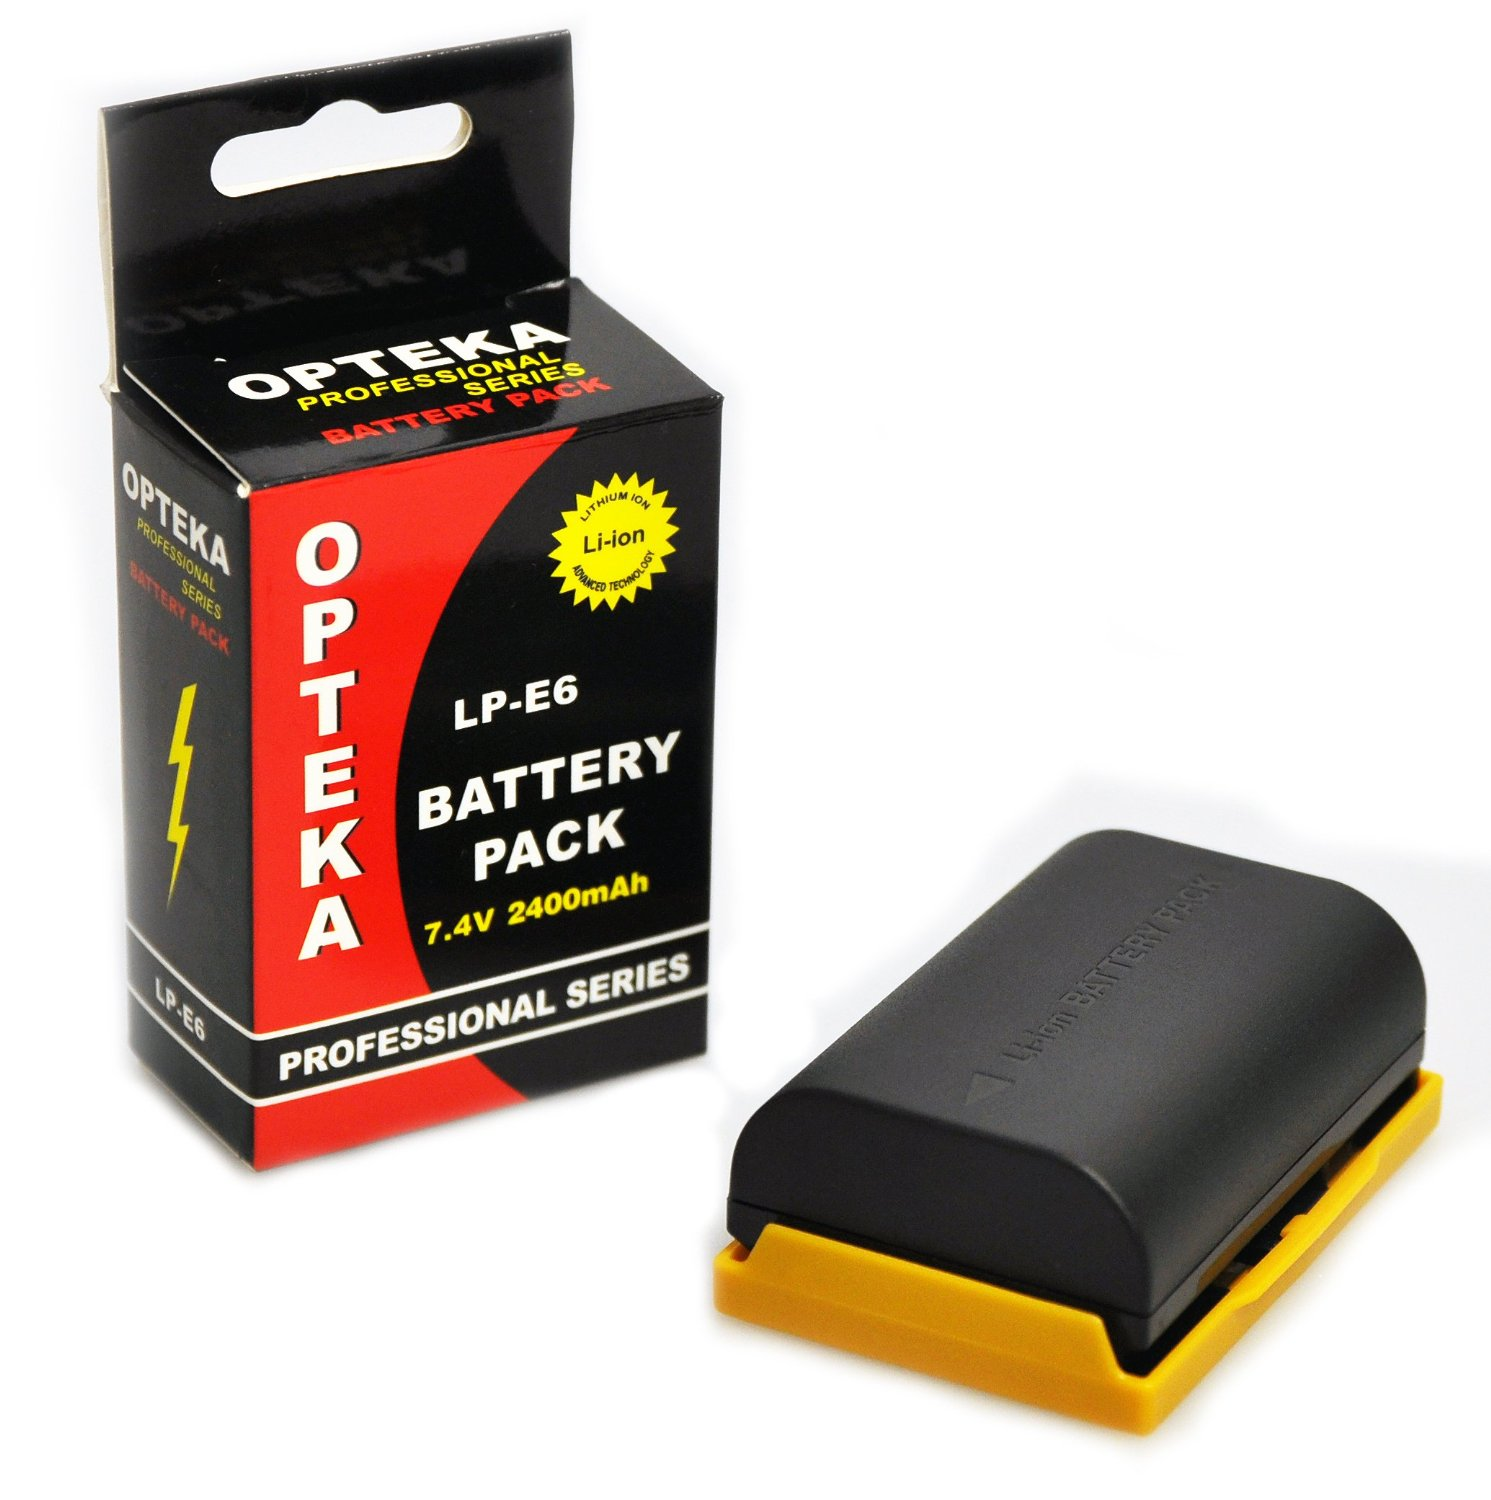 Opteka LP-E6 LPE6 2400mAh Ultra High Capacity Li-ion Battery Pack for the Canon EOS 5D Mark 2 3 II III 5DM2 5DM3 6D 7D 60D 60Da 70D DSLR Digital Camera